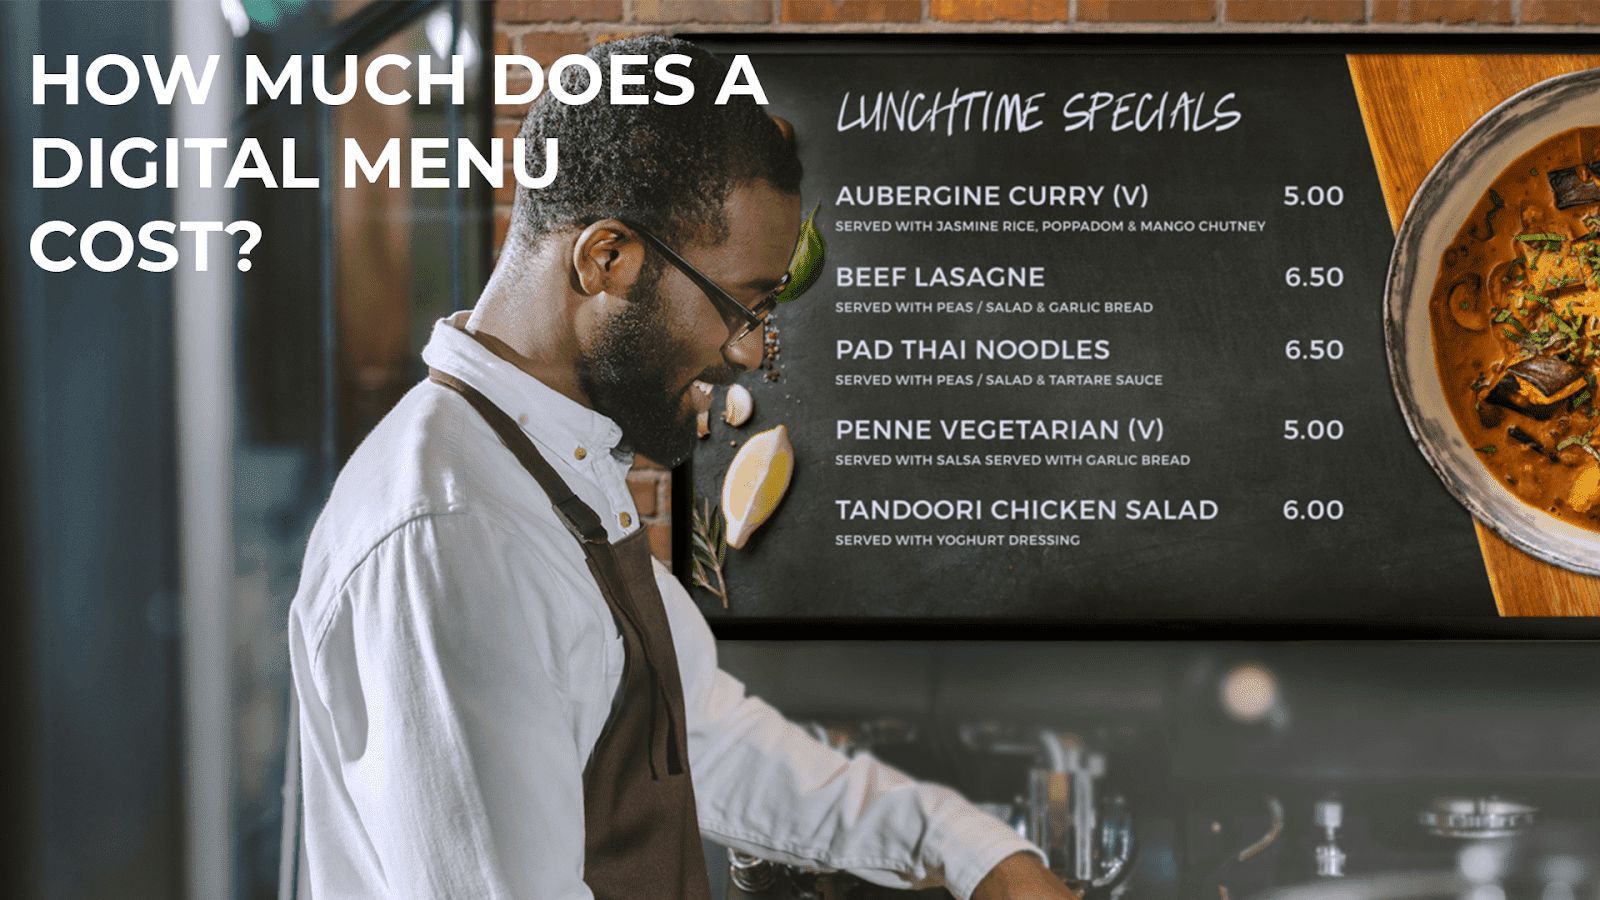 How much does digital menu cost